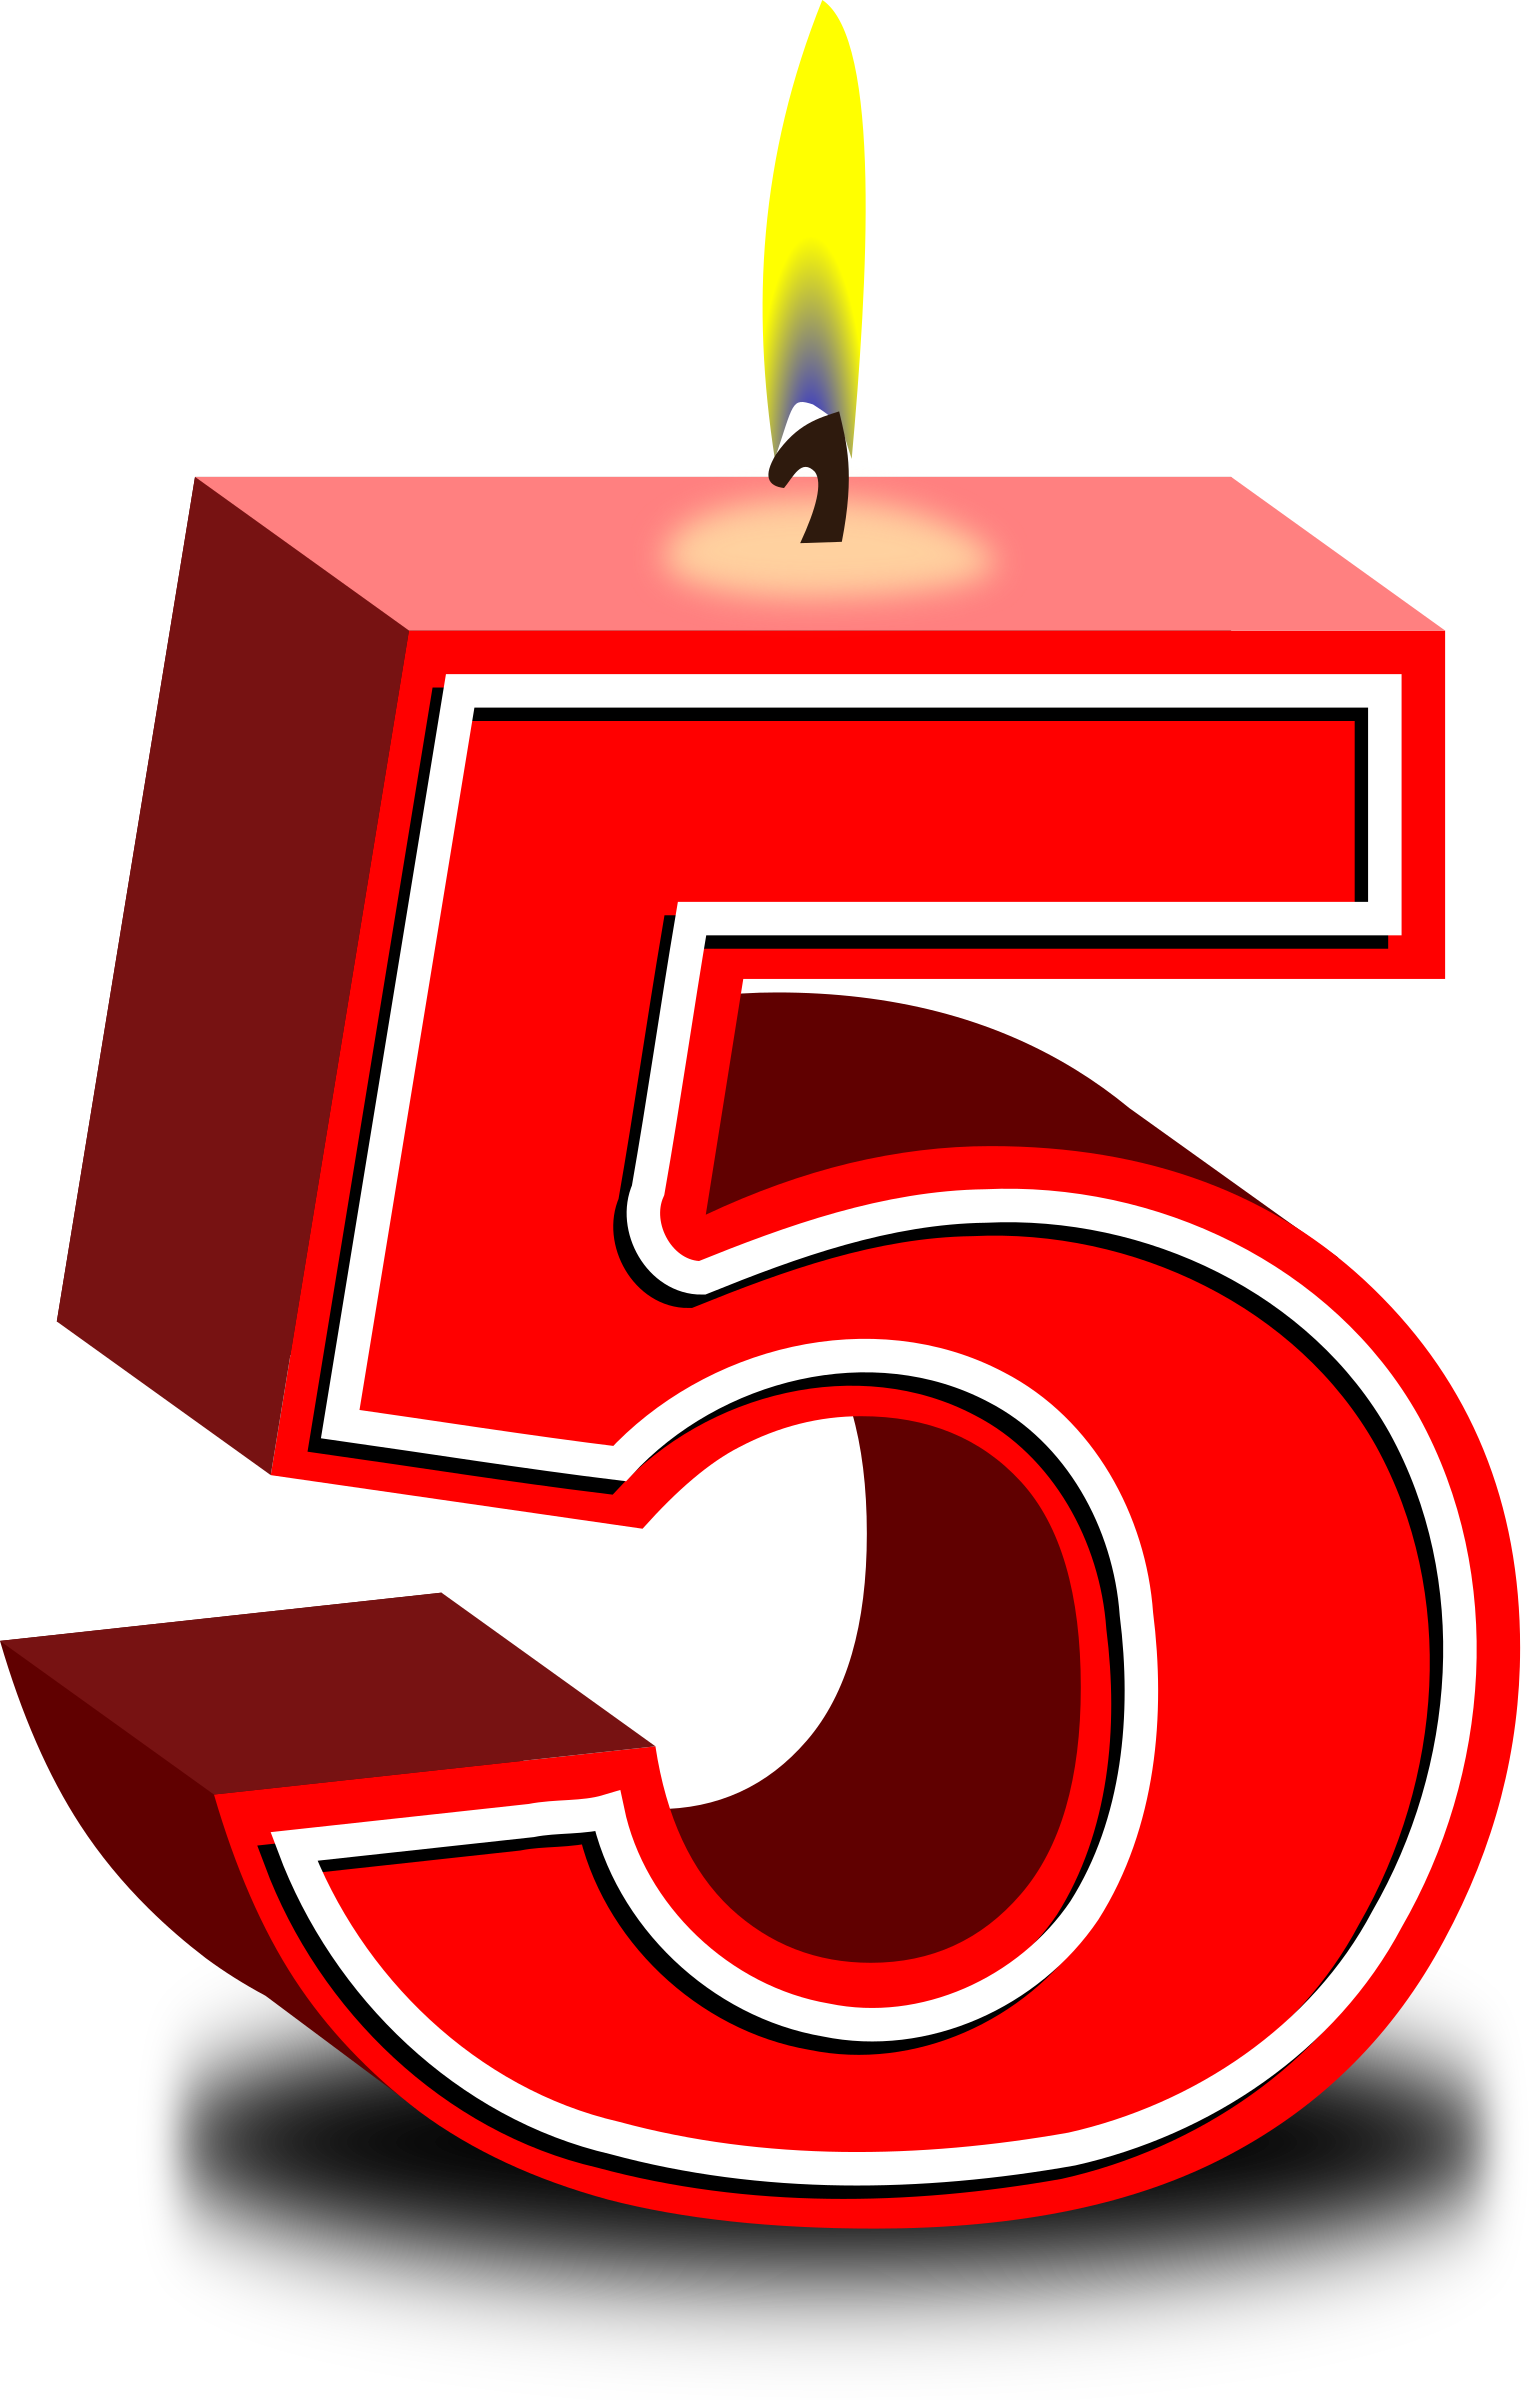 Five candle pencil and. Number 1 clipart birthday number 5